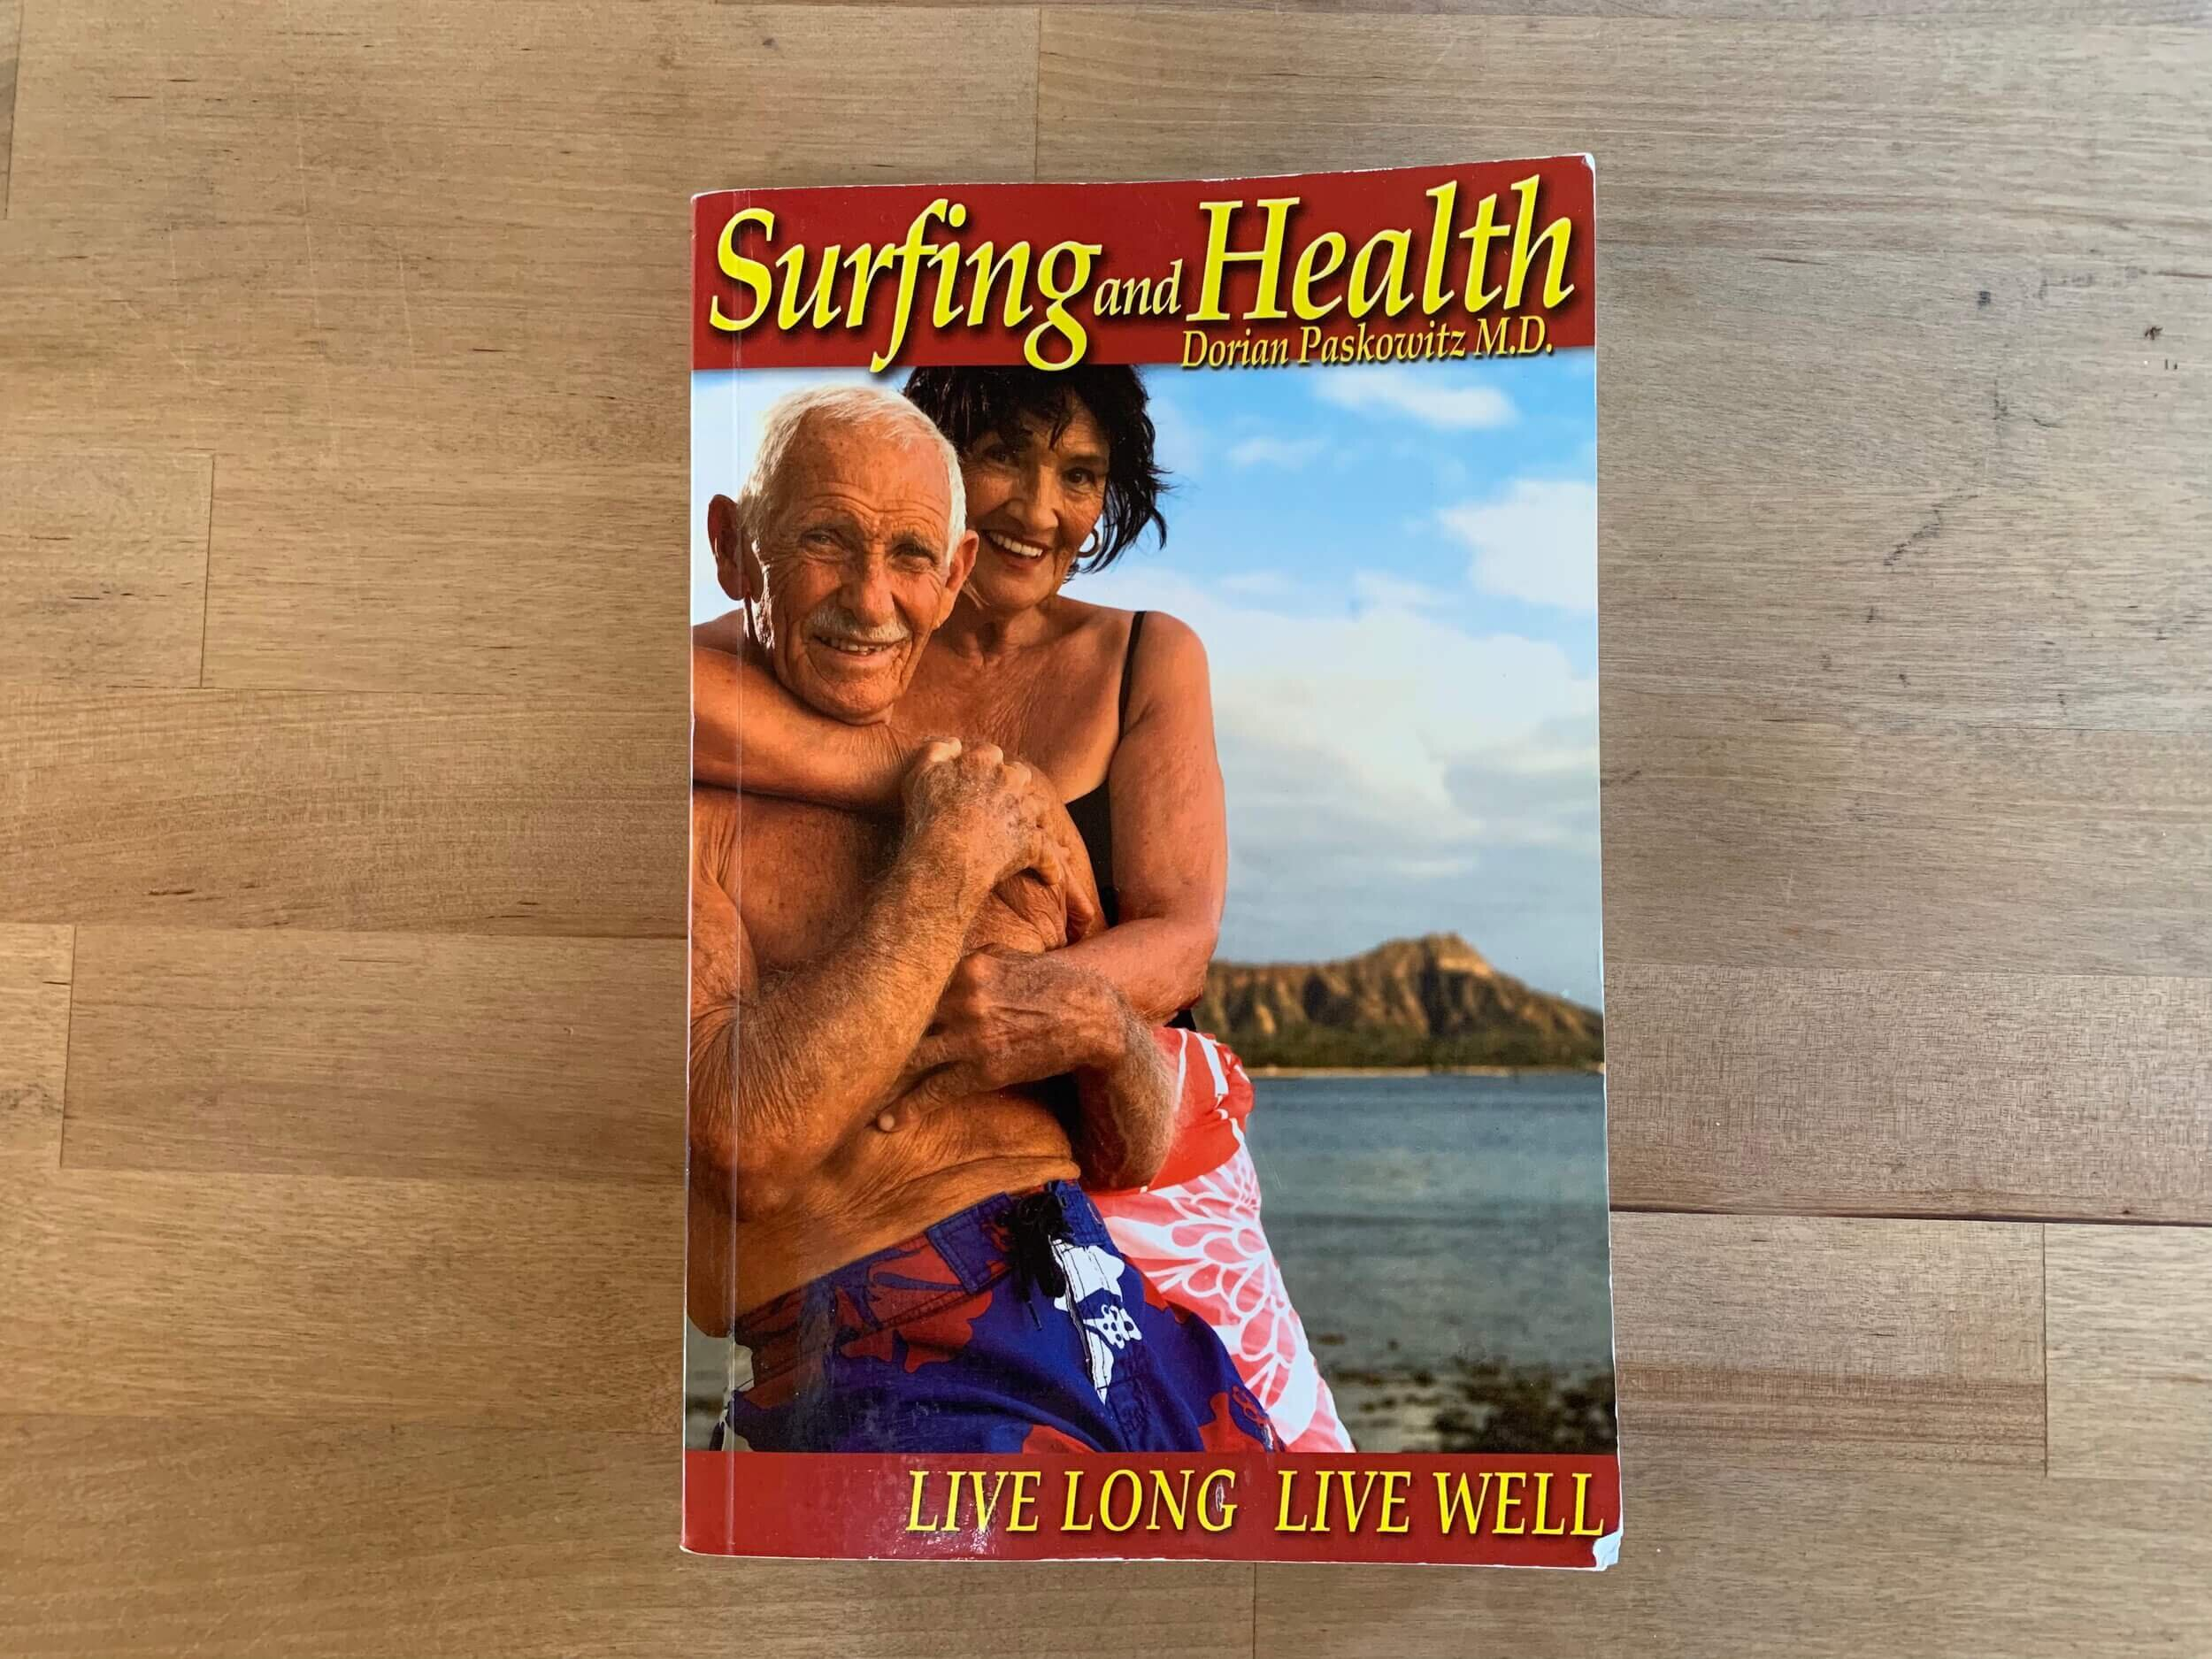 Reform_Life_Goods_Surfing_and_Health (1).jpeg